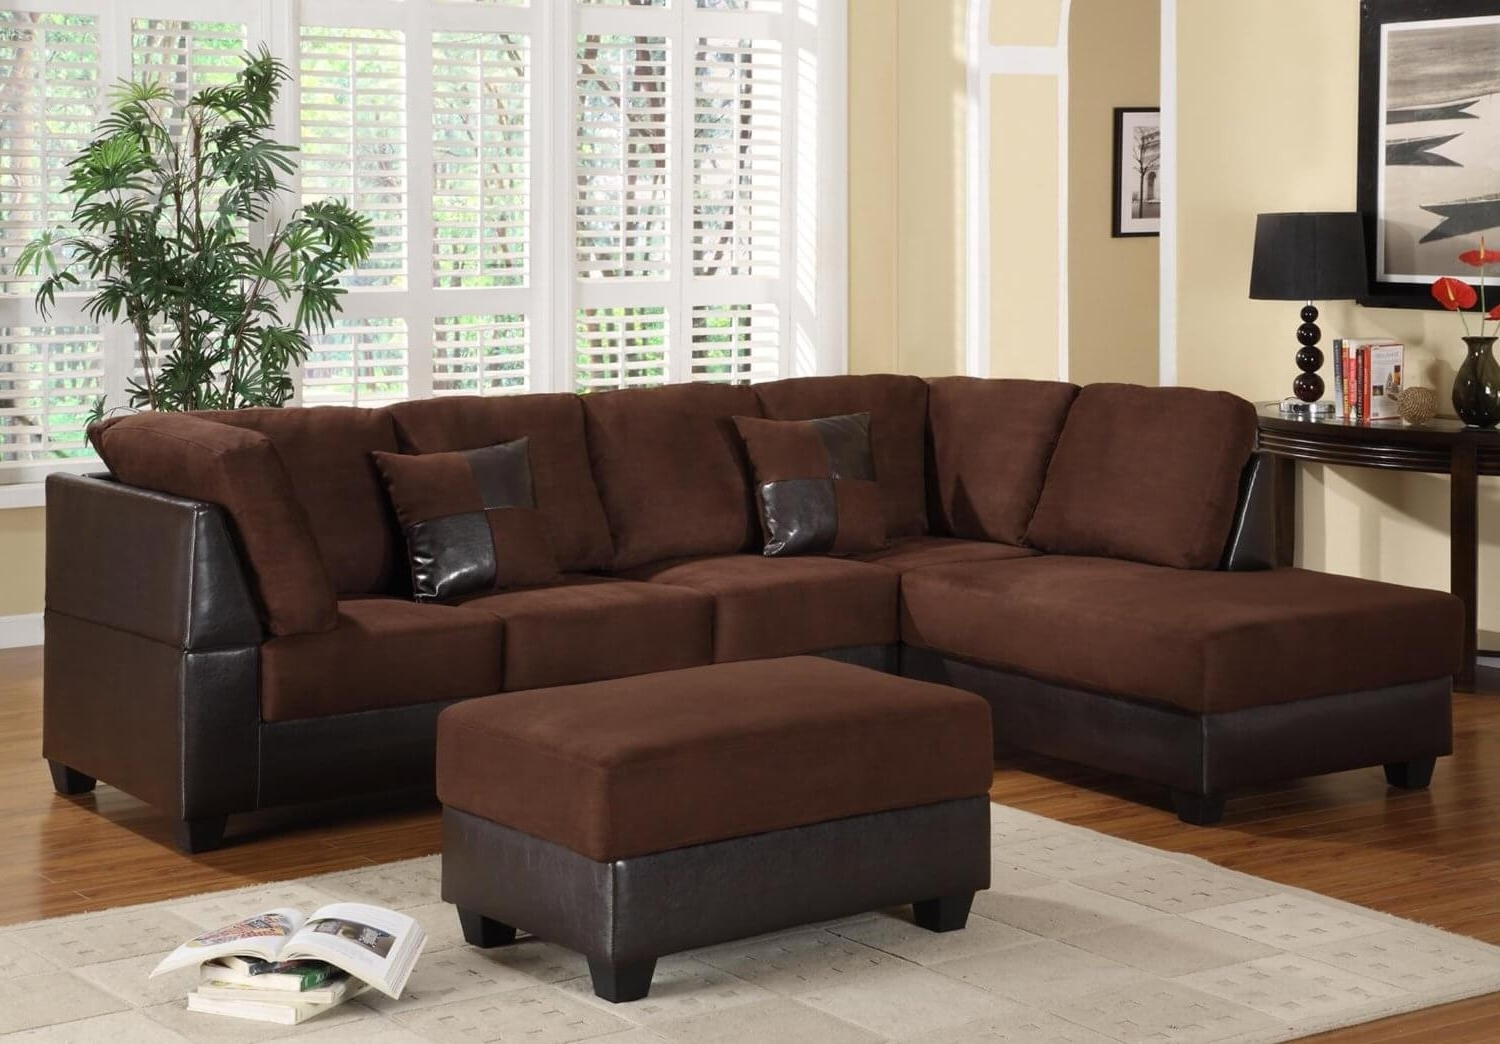 Well Known 40 Cheap Sectional Sofas Under $500 For 2018 Pertaining To Sectional Sofas Under  (View 15 of 15)